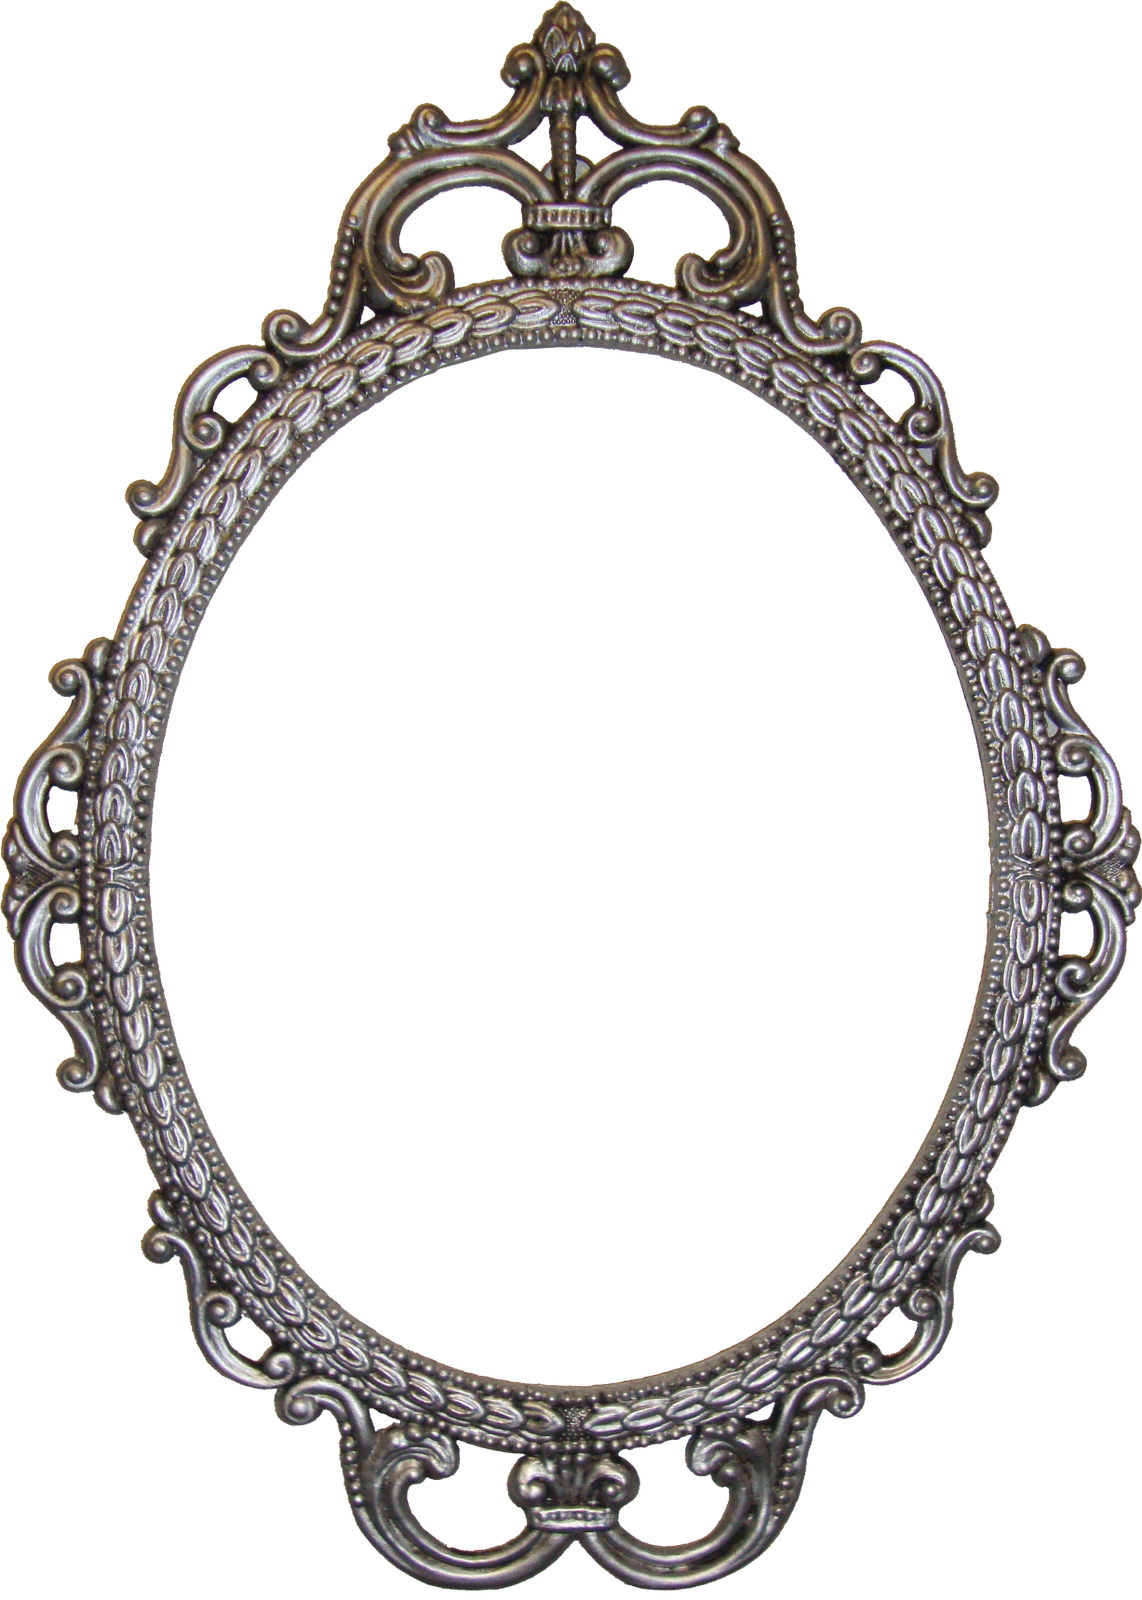 Download And Use Vintage Frame Png Clipart image #30404